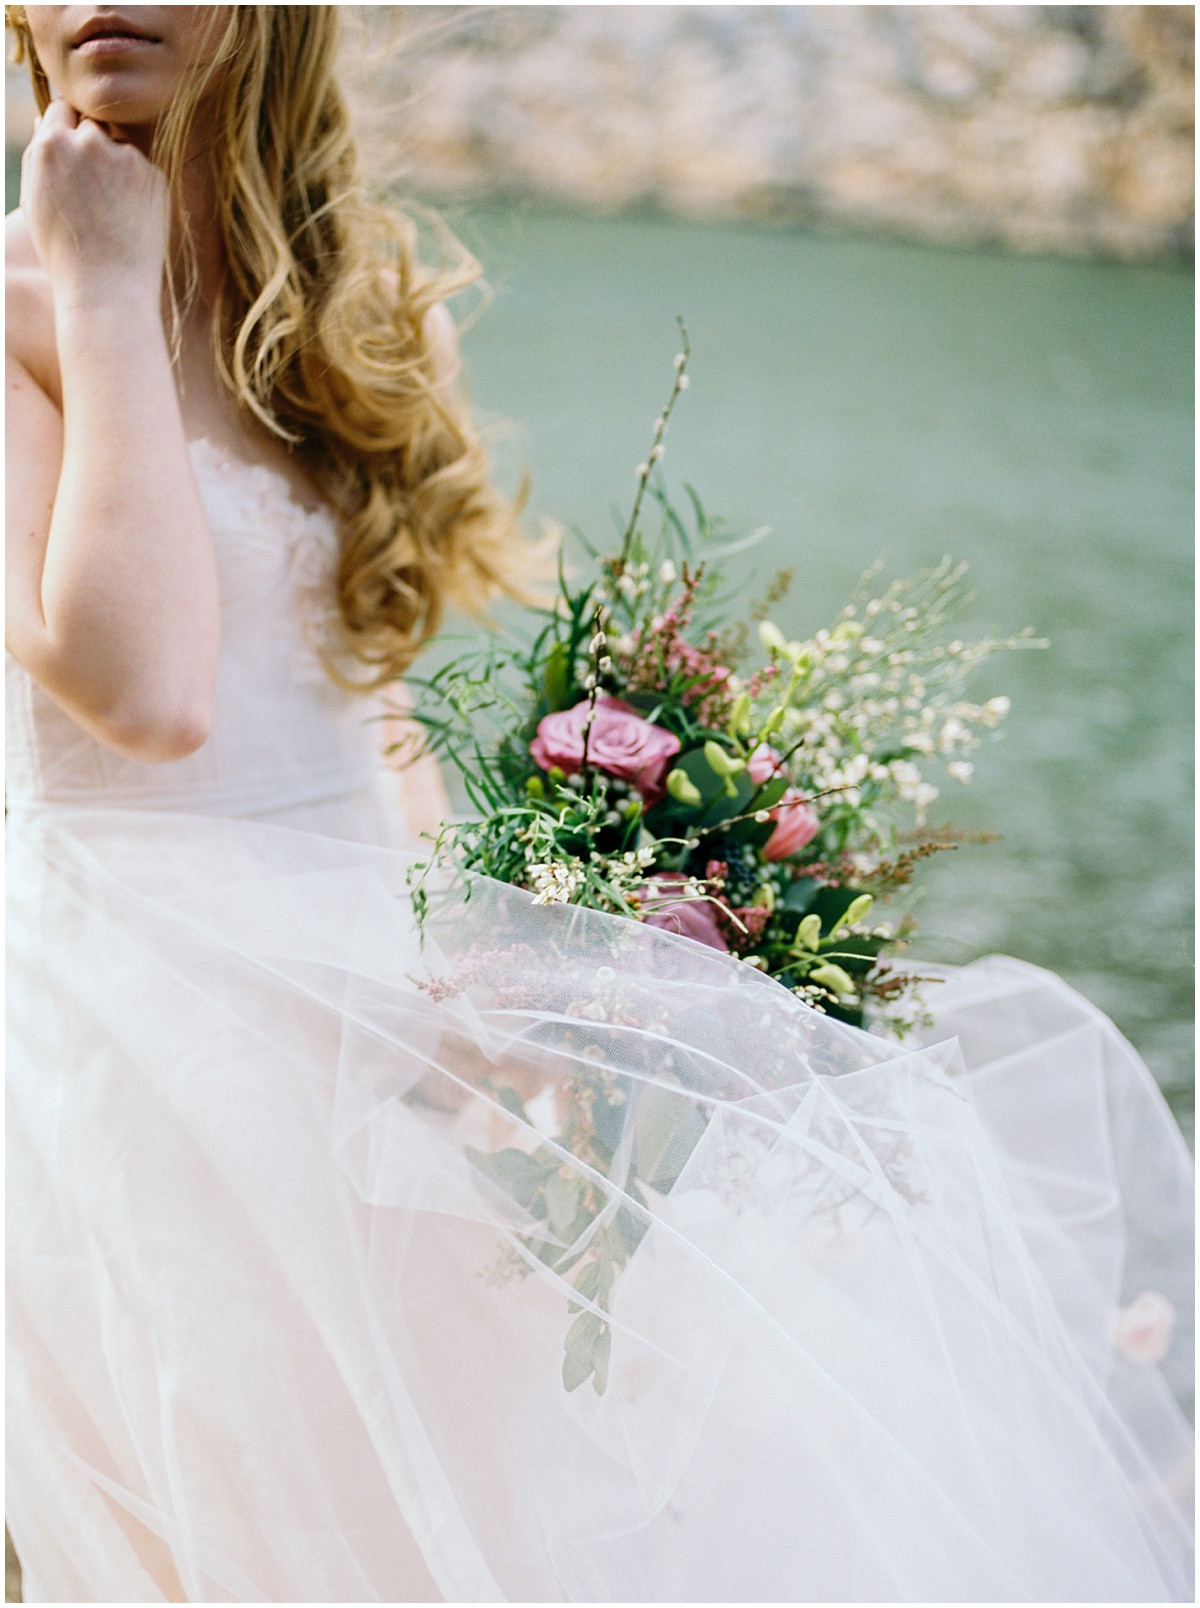 Abigail_Malone_Film_Wedding_Photography_KNoxville_TN_Blush_Dress_Outdoor_Windy_Pink_and_Green_Wedding_0016.jpg